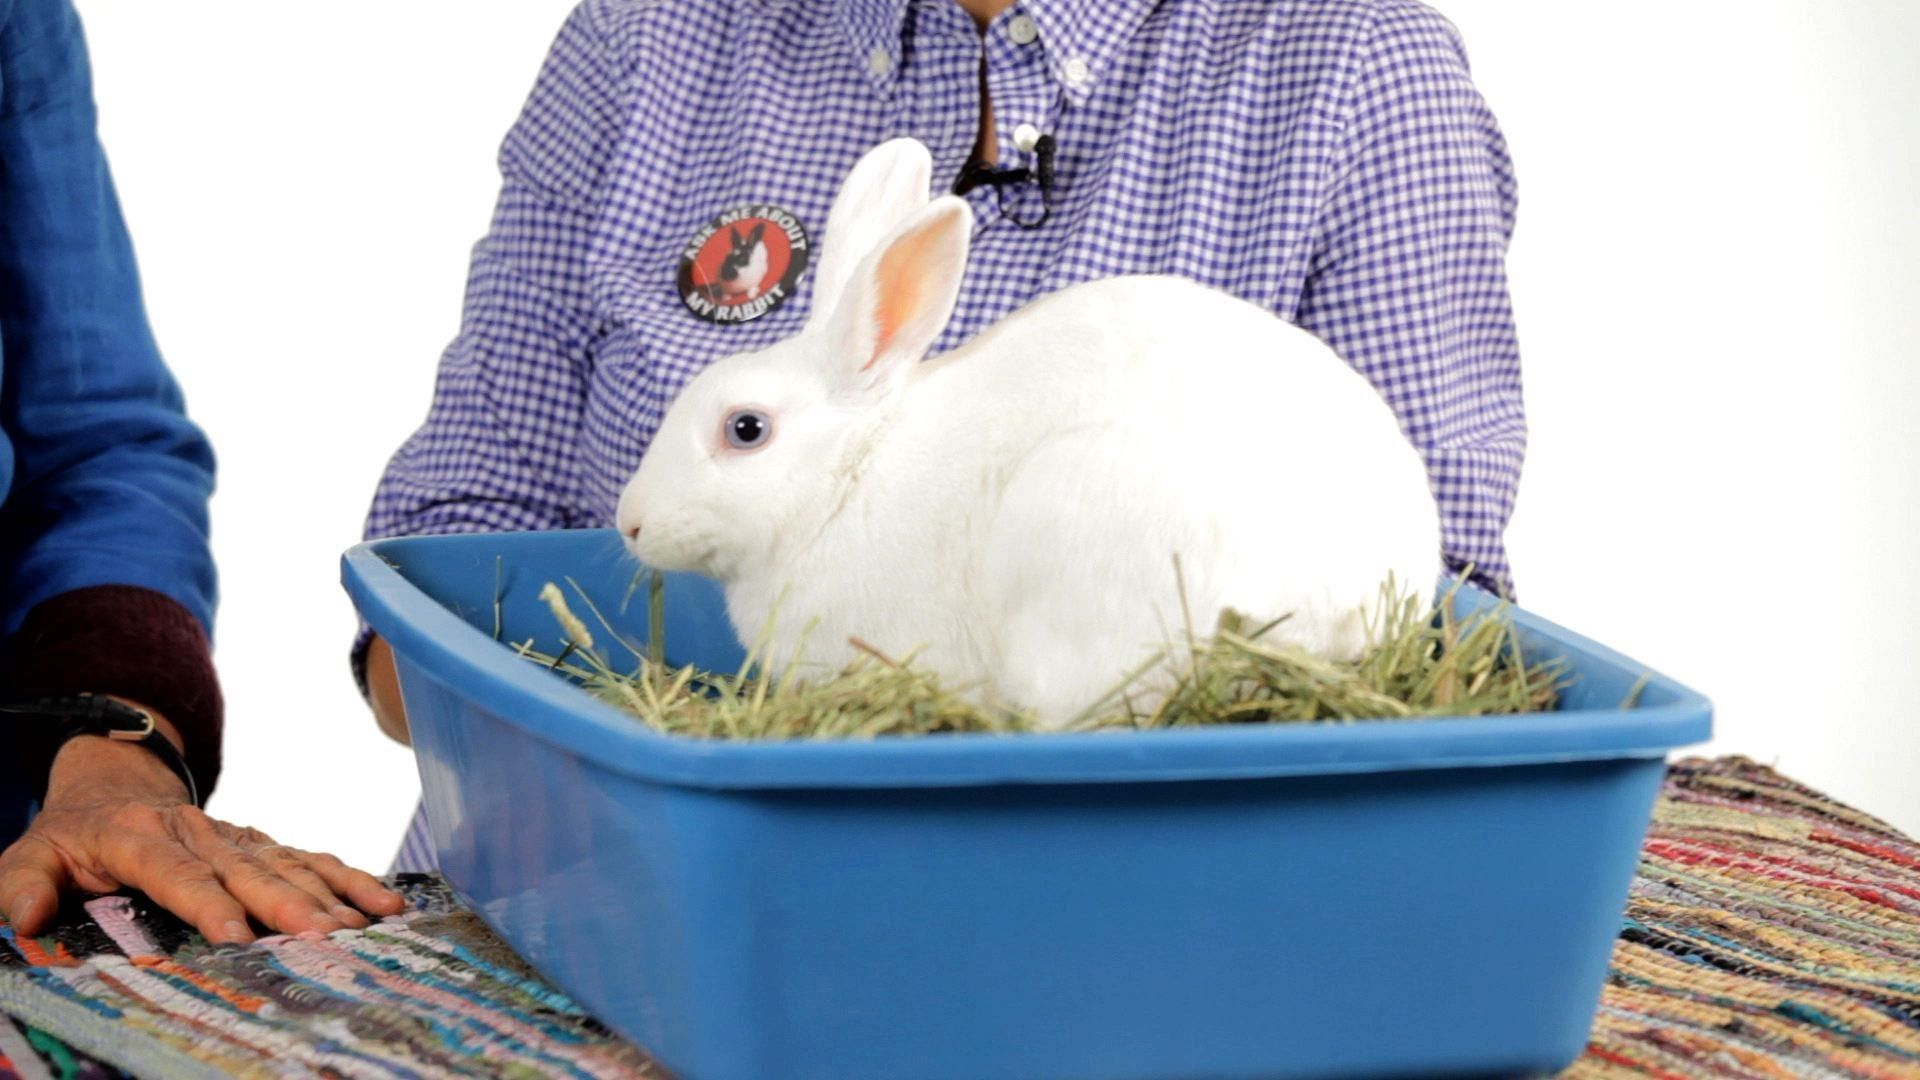 Can Rabbits Be Litter Trained? Pet Rabbits Pet rabbit